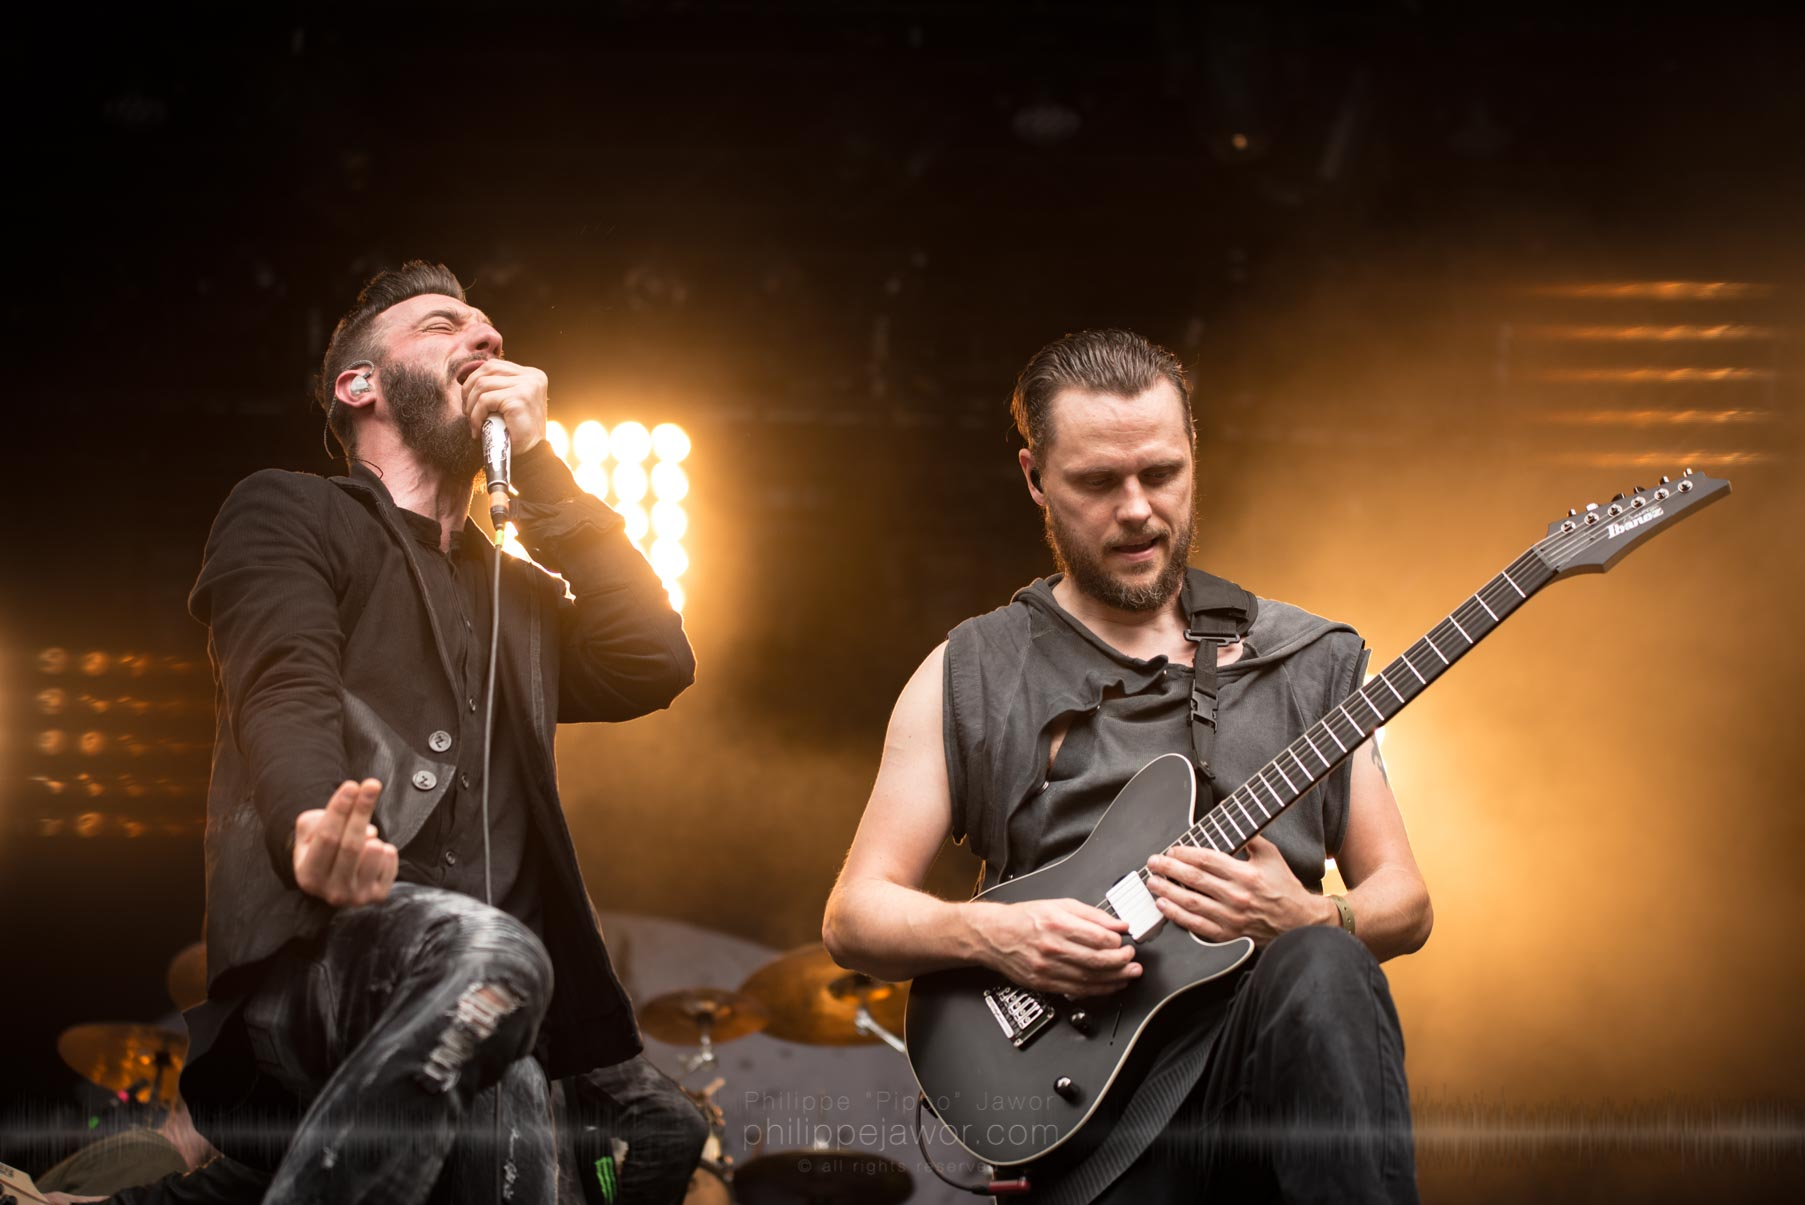 The German metalcore band Caliban live at Sylak Open Air festival, Saint Maurice de Gourdans, France, August 2017.  On assignment for Metal Obs' Magazine All rights reserved.